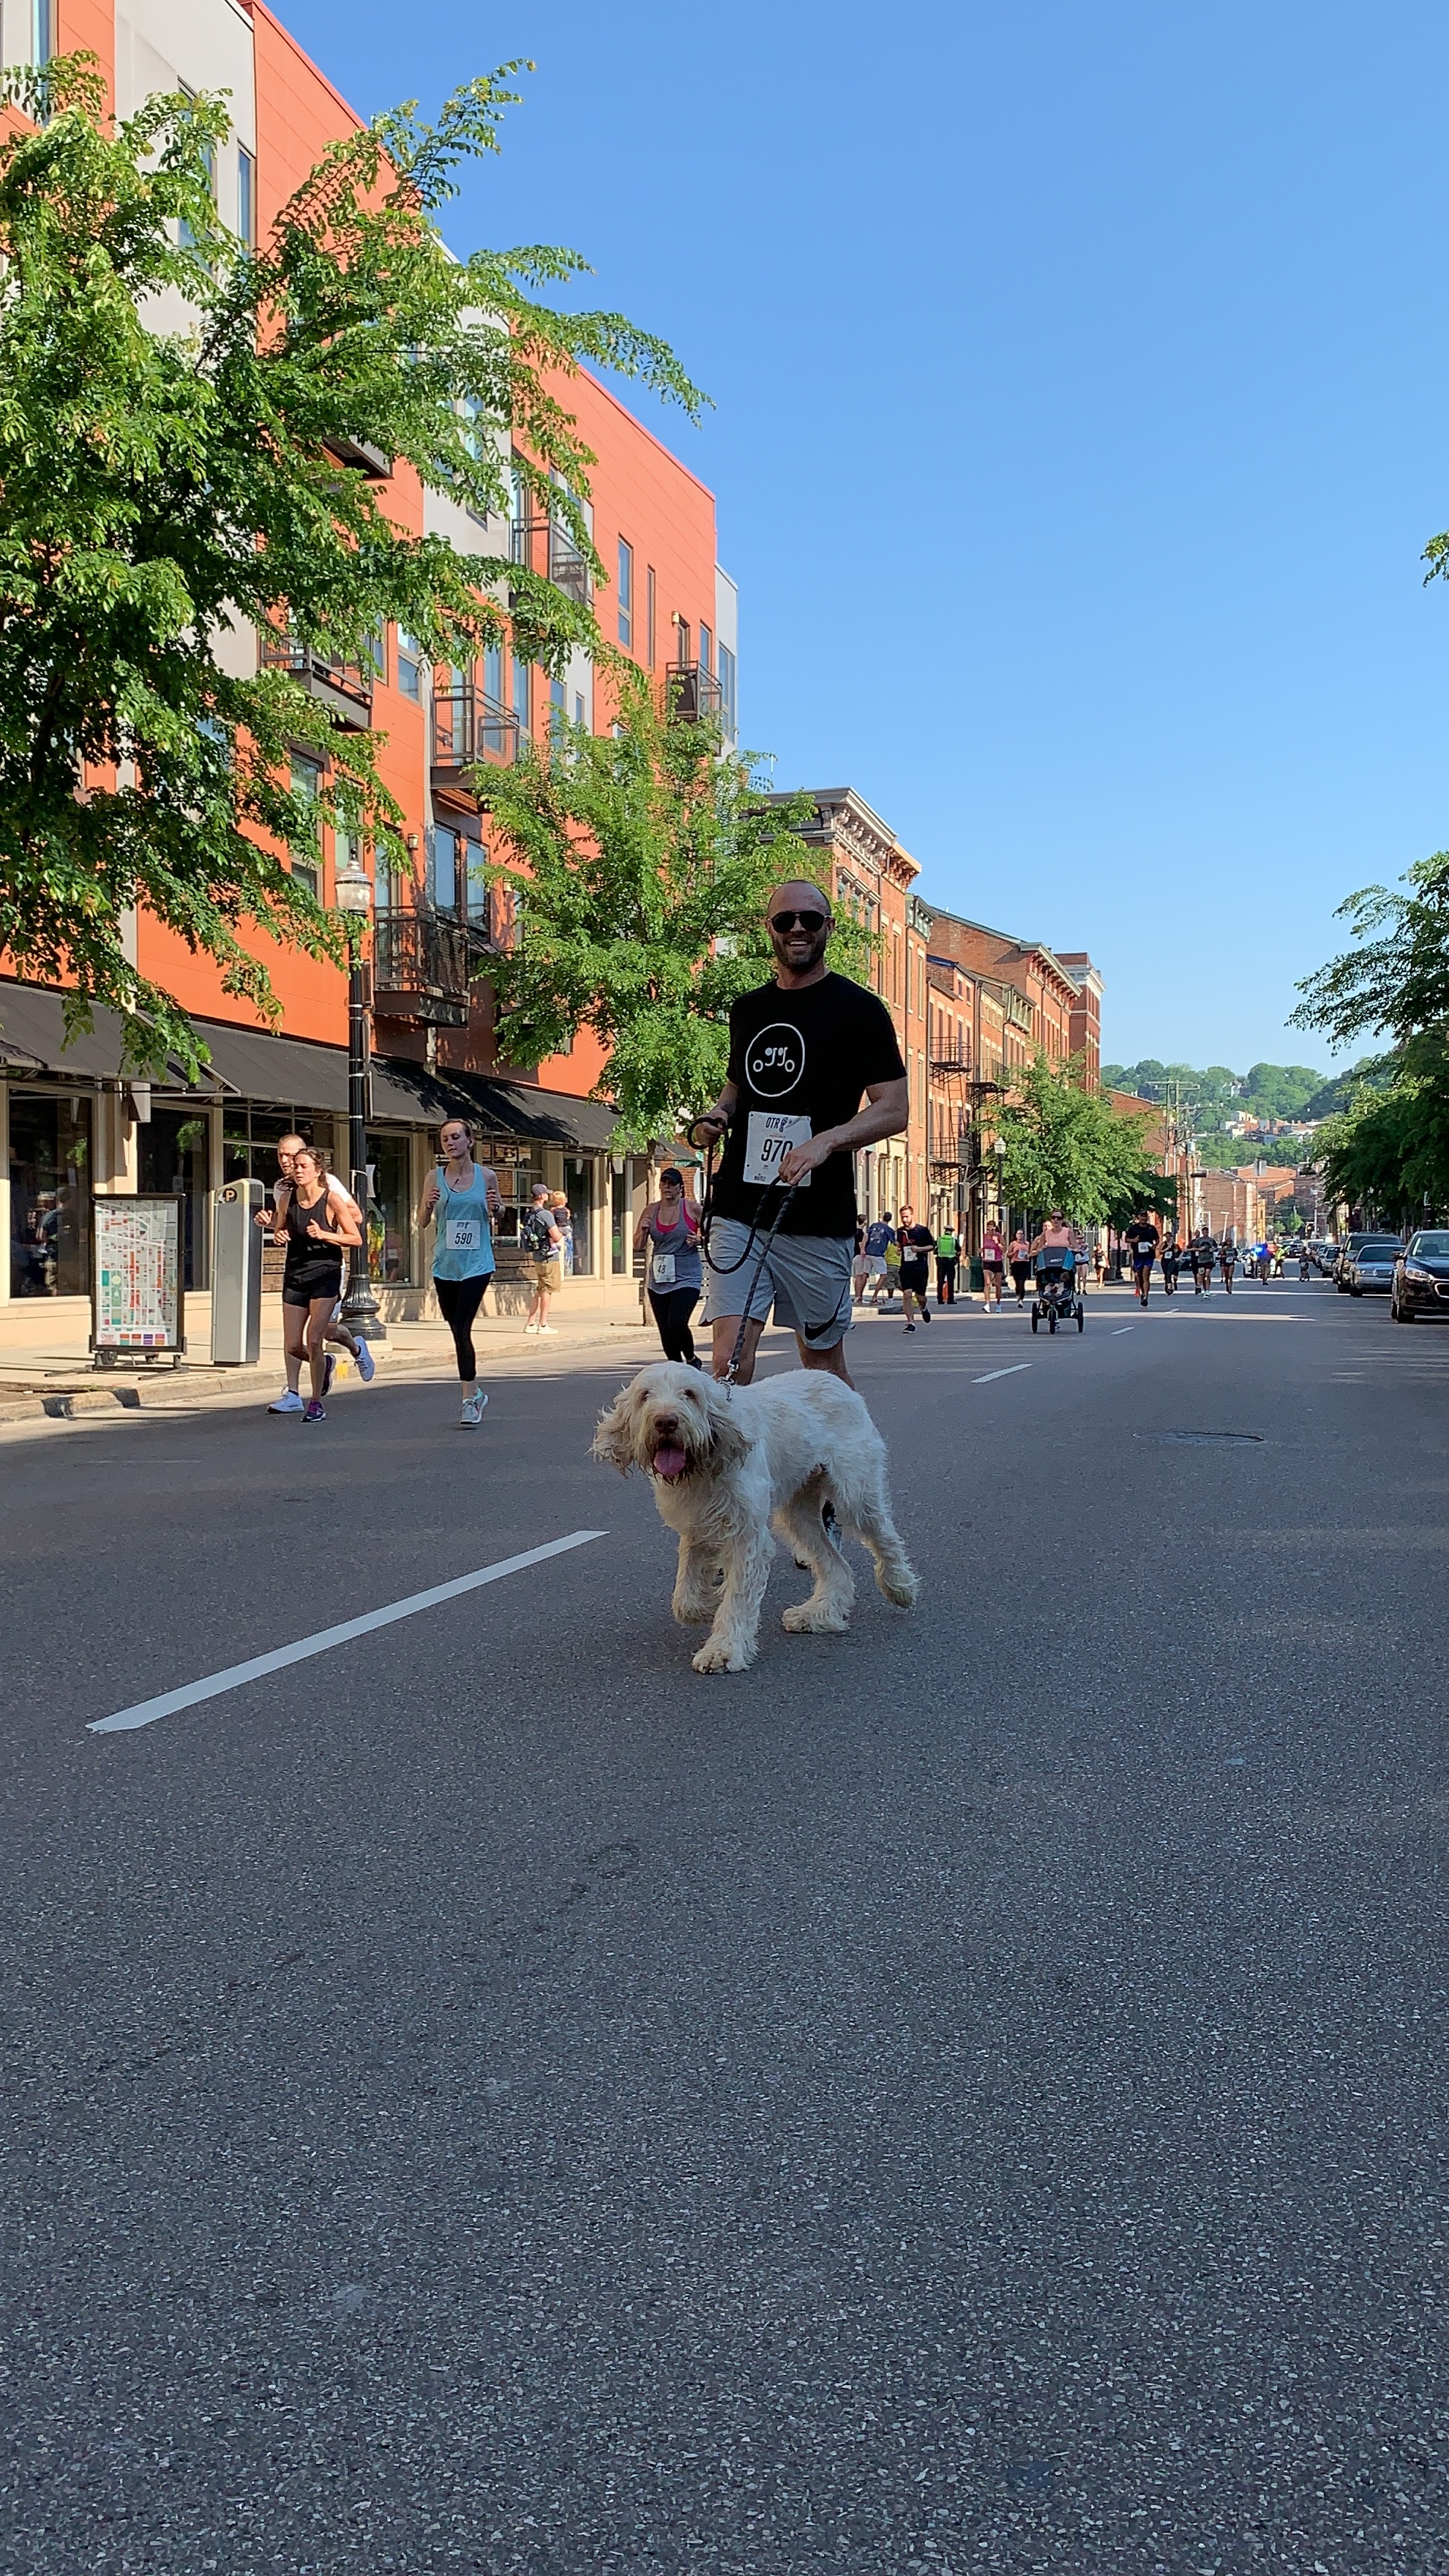 Oh-Go owner Dustin reps the brand in the 5k with his furry friend, Albus.